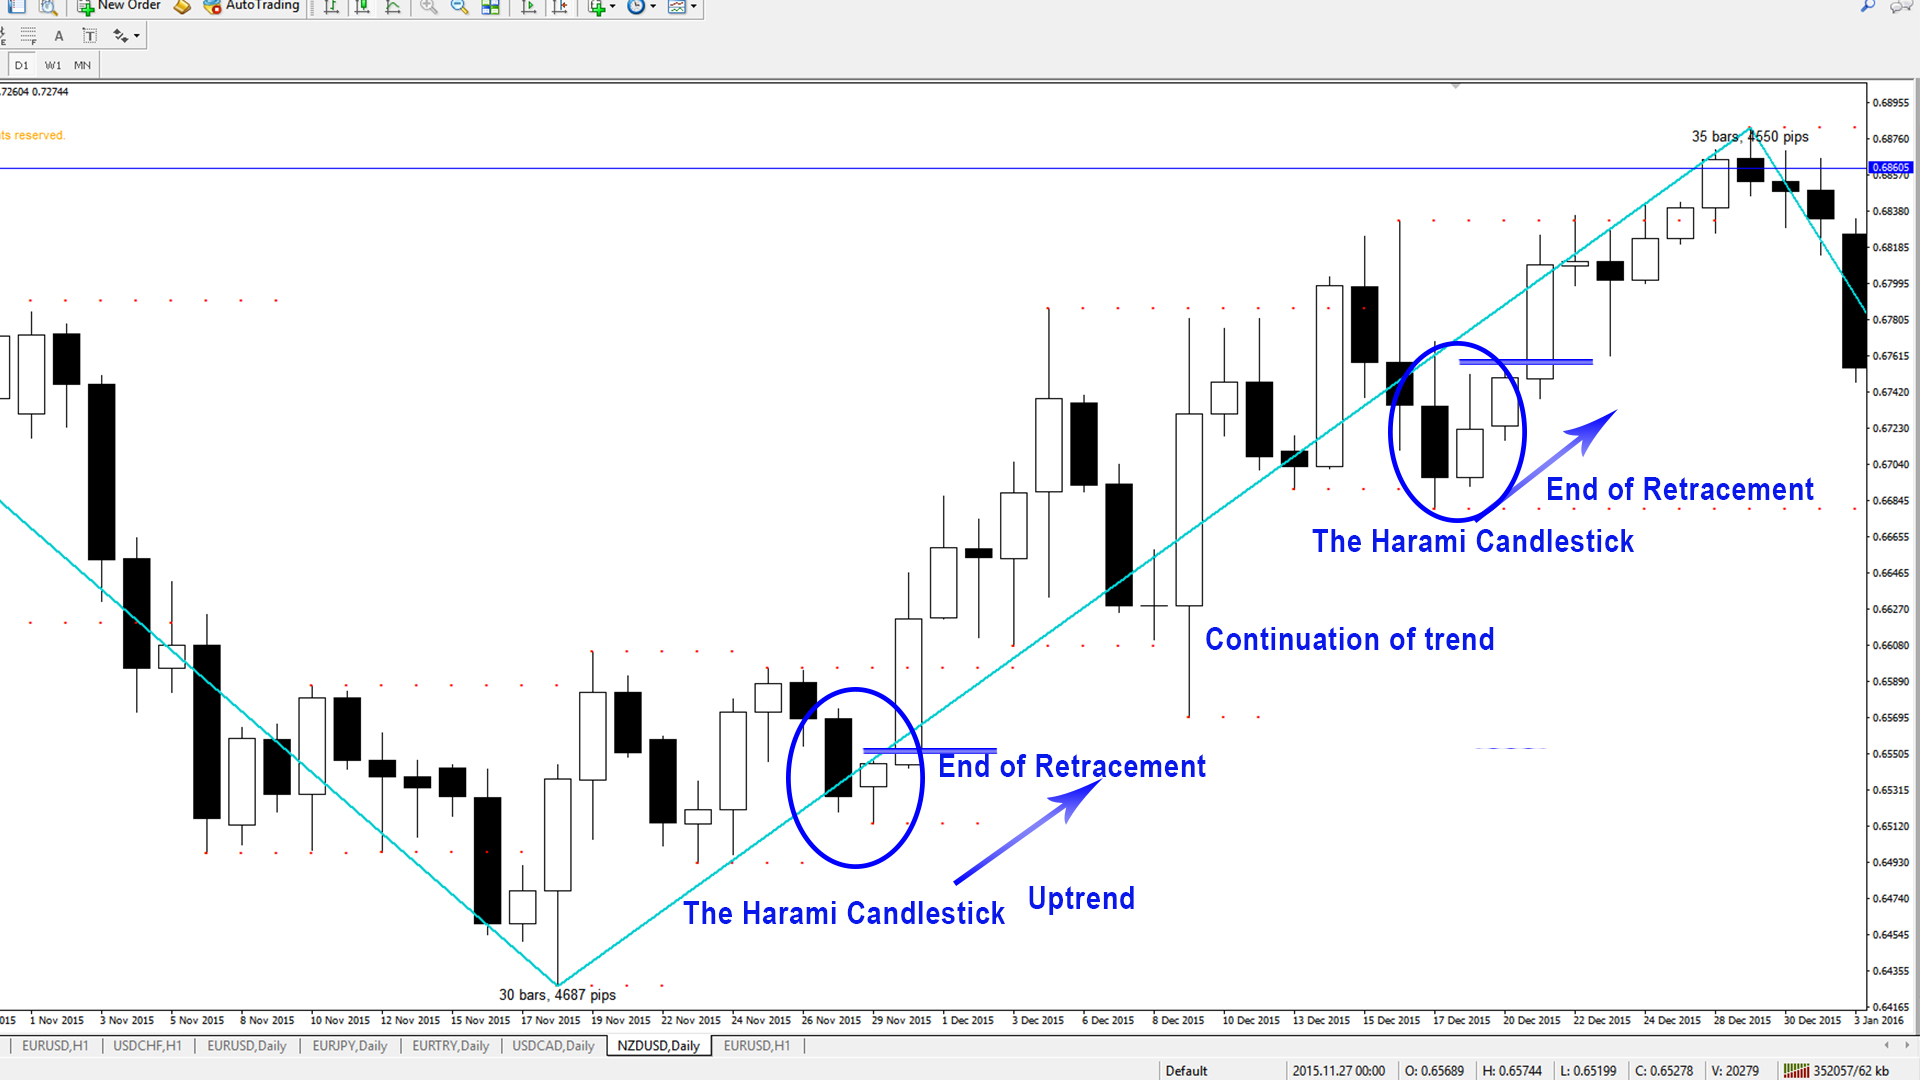 Candlestick Patterns - The Harami - Uptrend 1